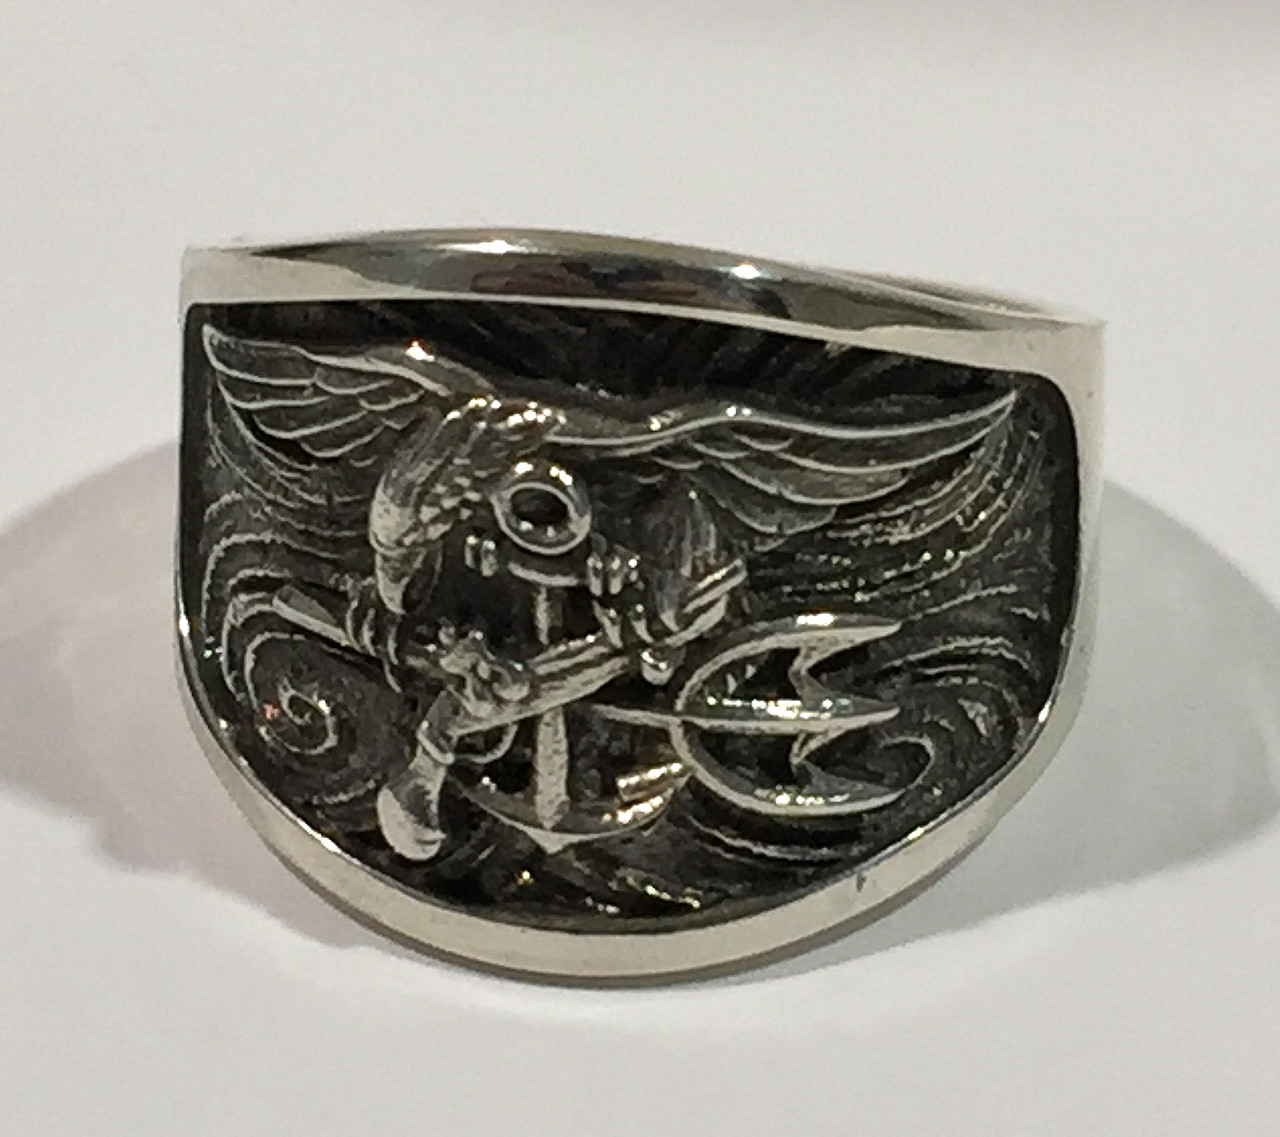 US Navy Seal Solid Sterling Silver Ring featuring the Seal Trident